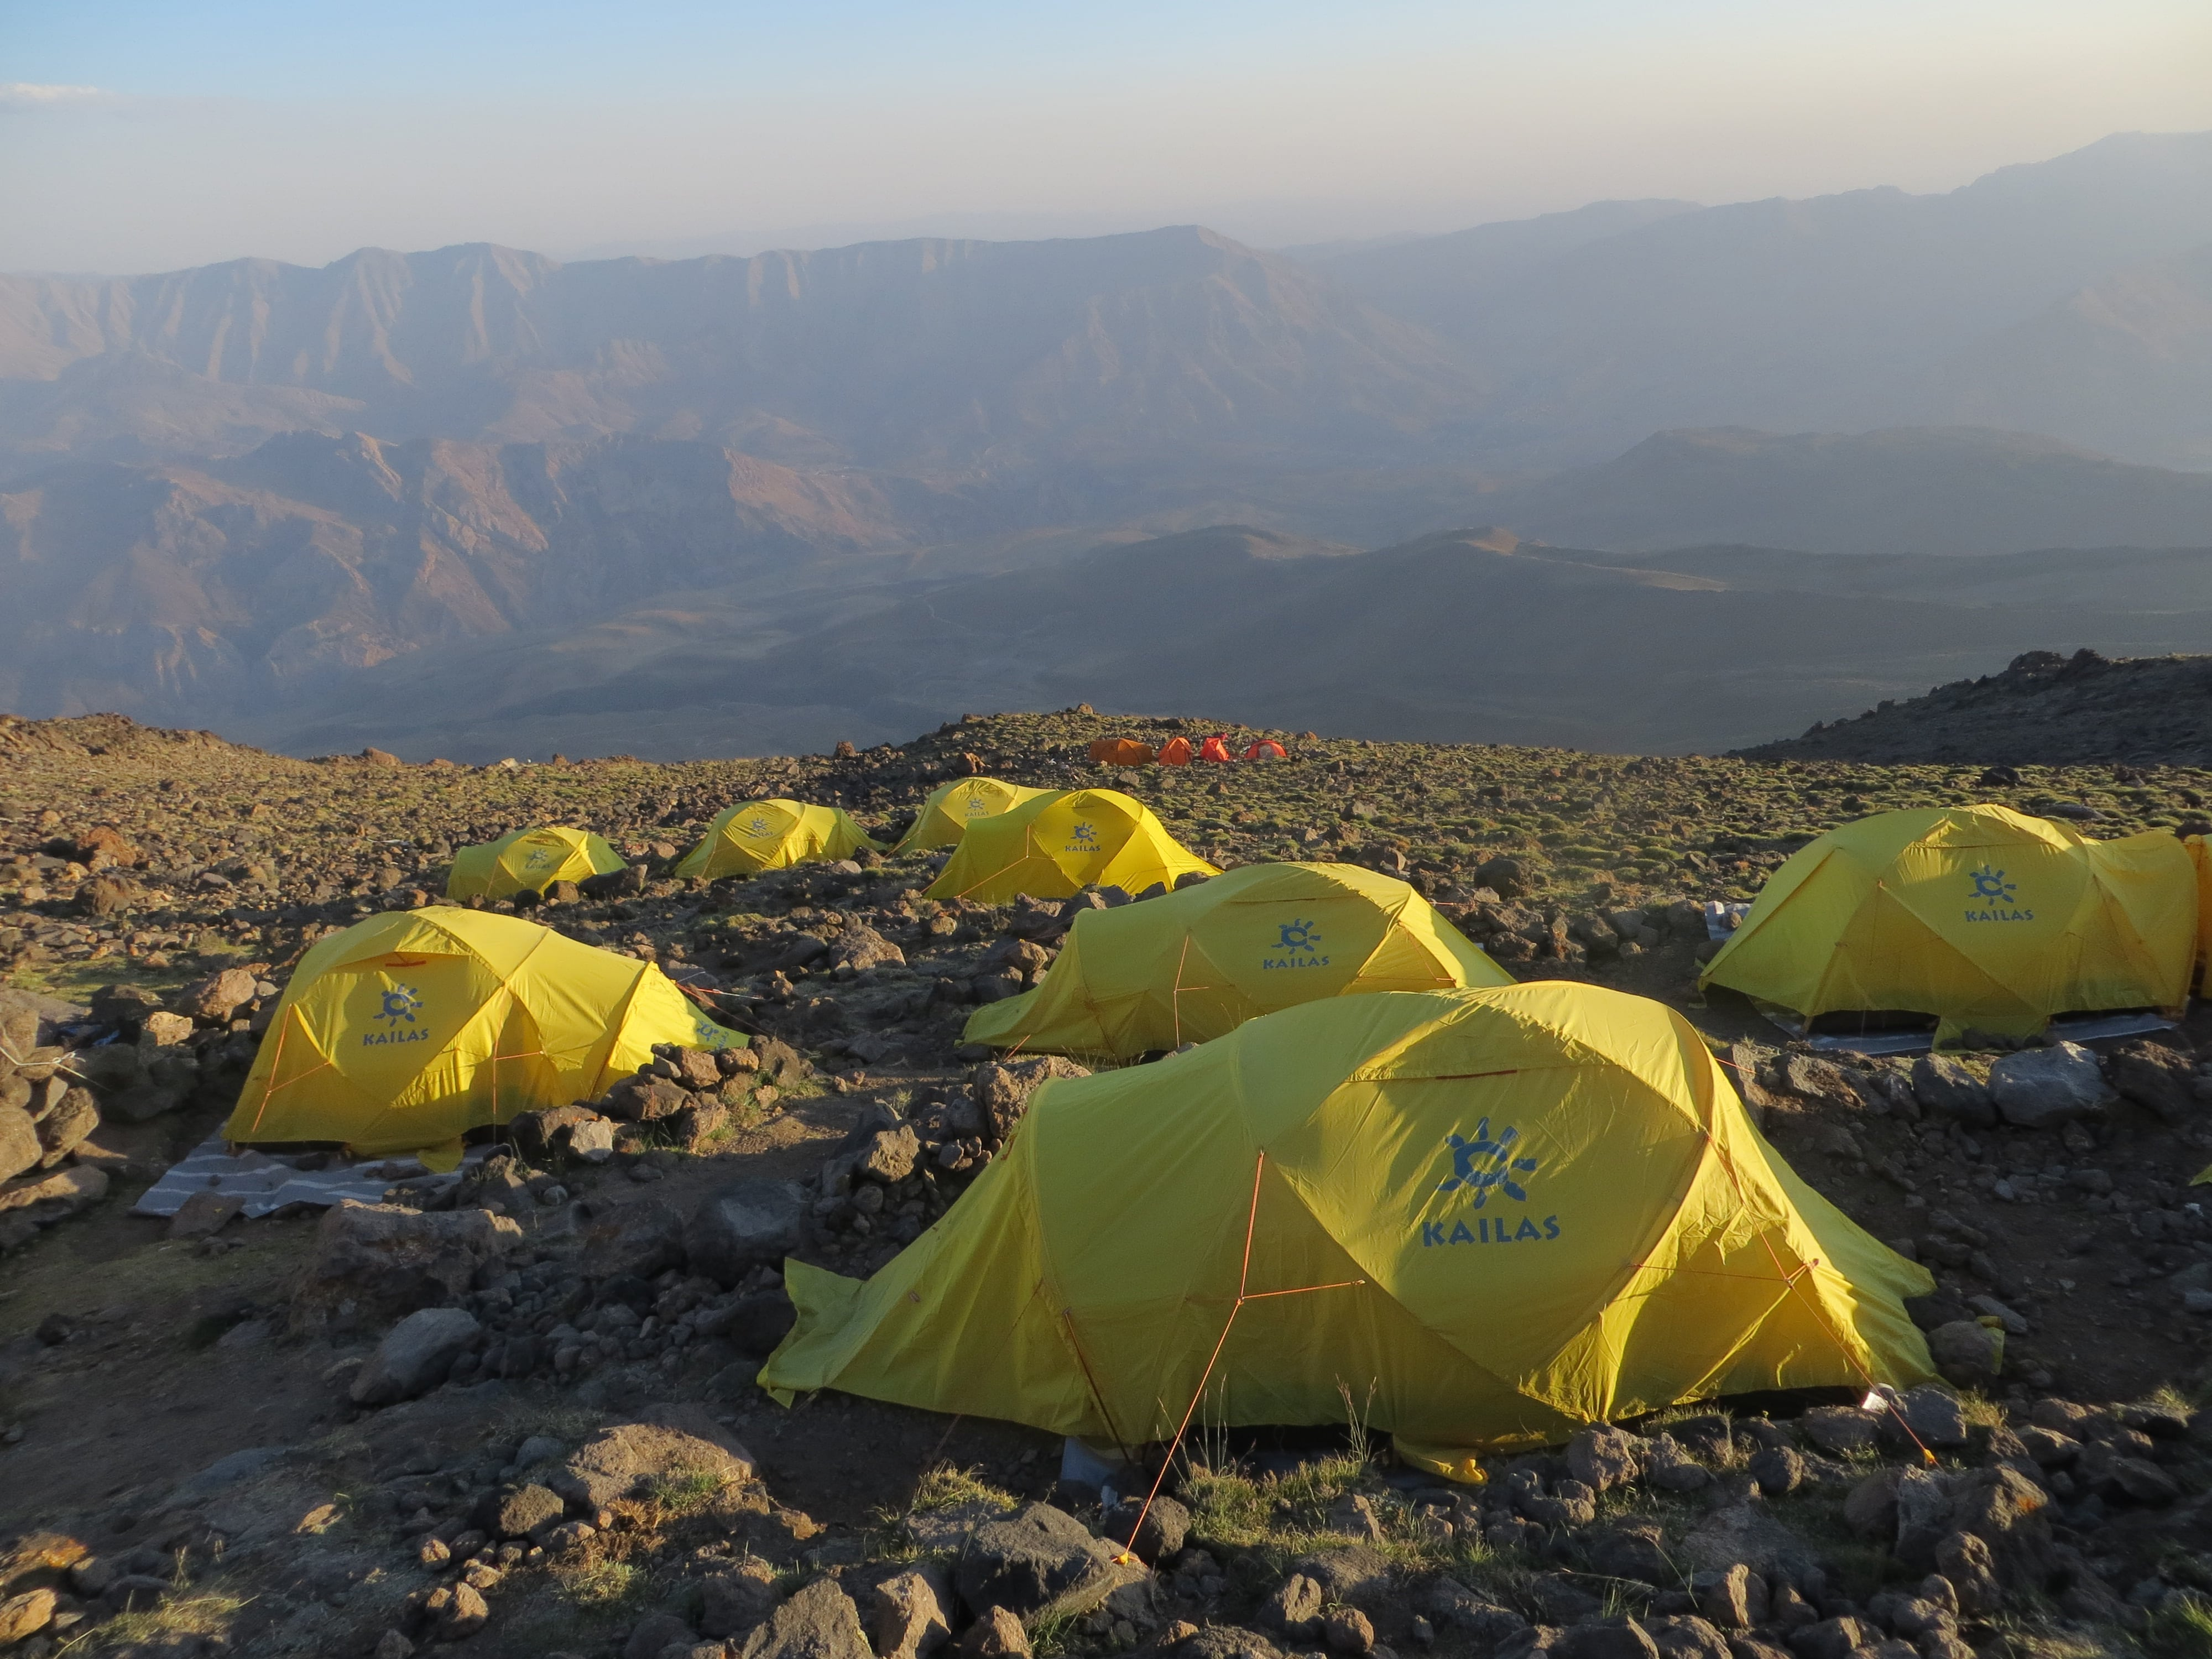 10. Tent in Camp 3 (4150 m)